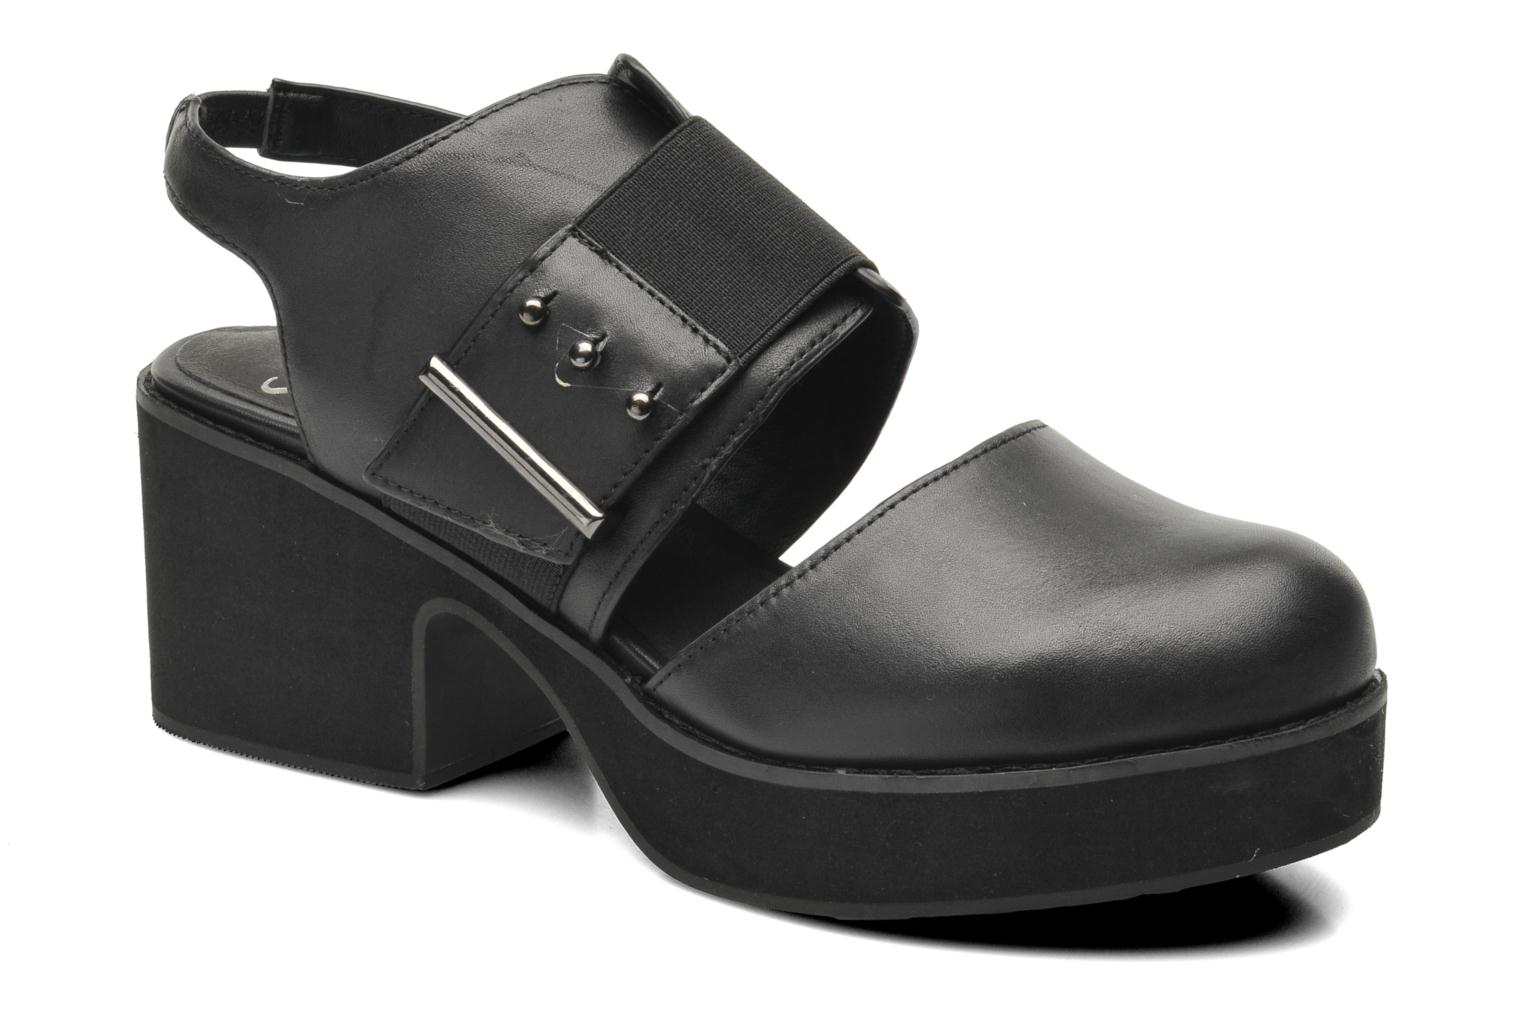 Marques Chaussure femme Shellys London femme Costain Black